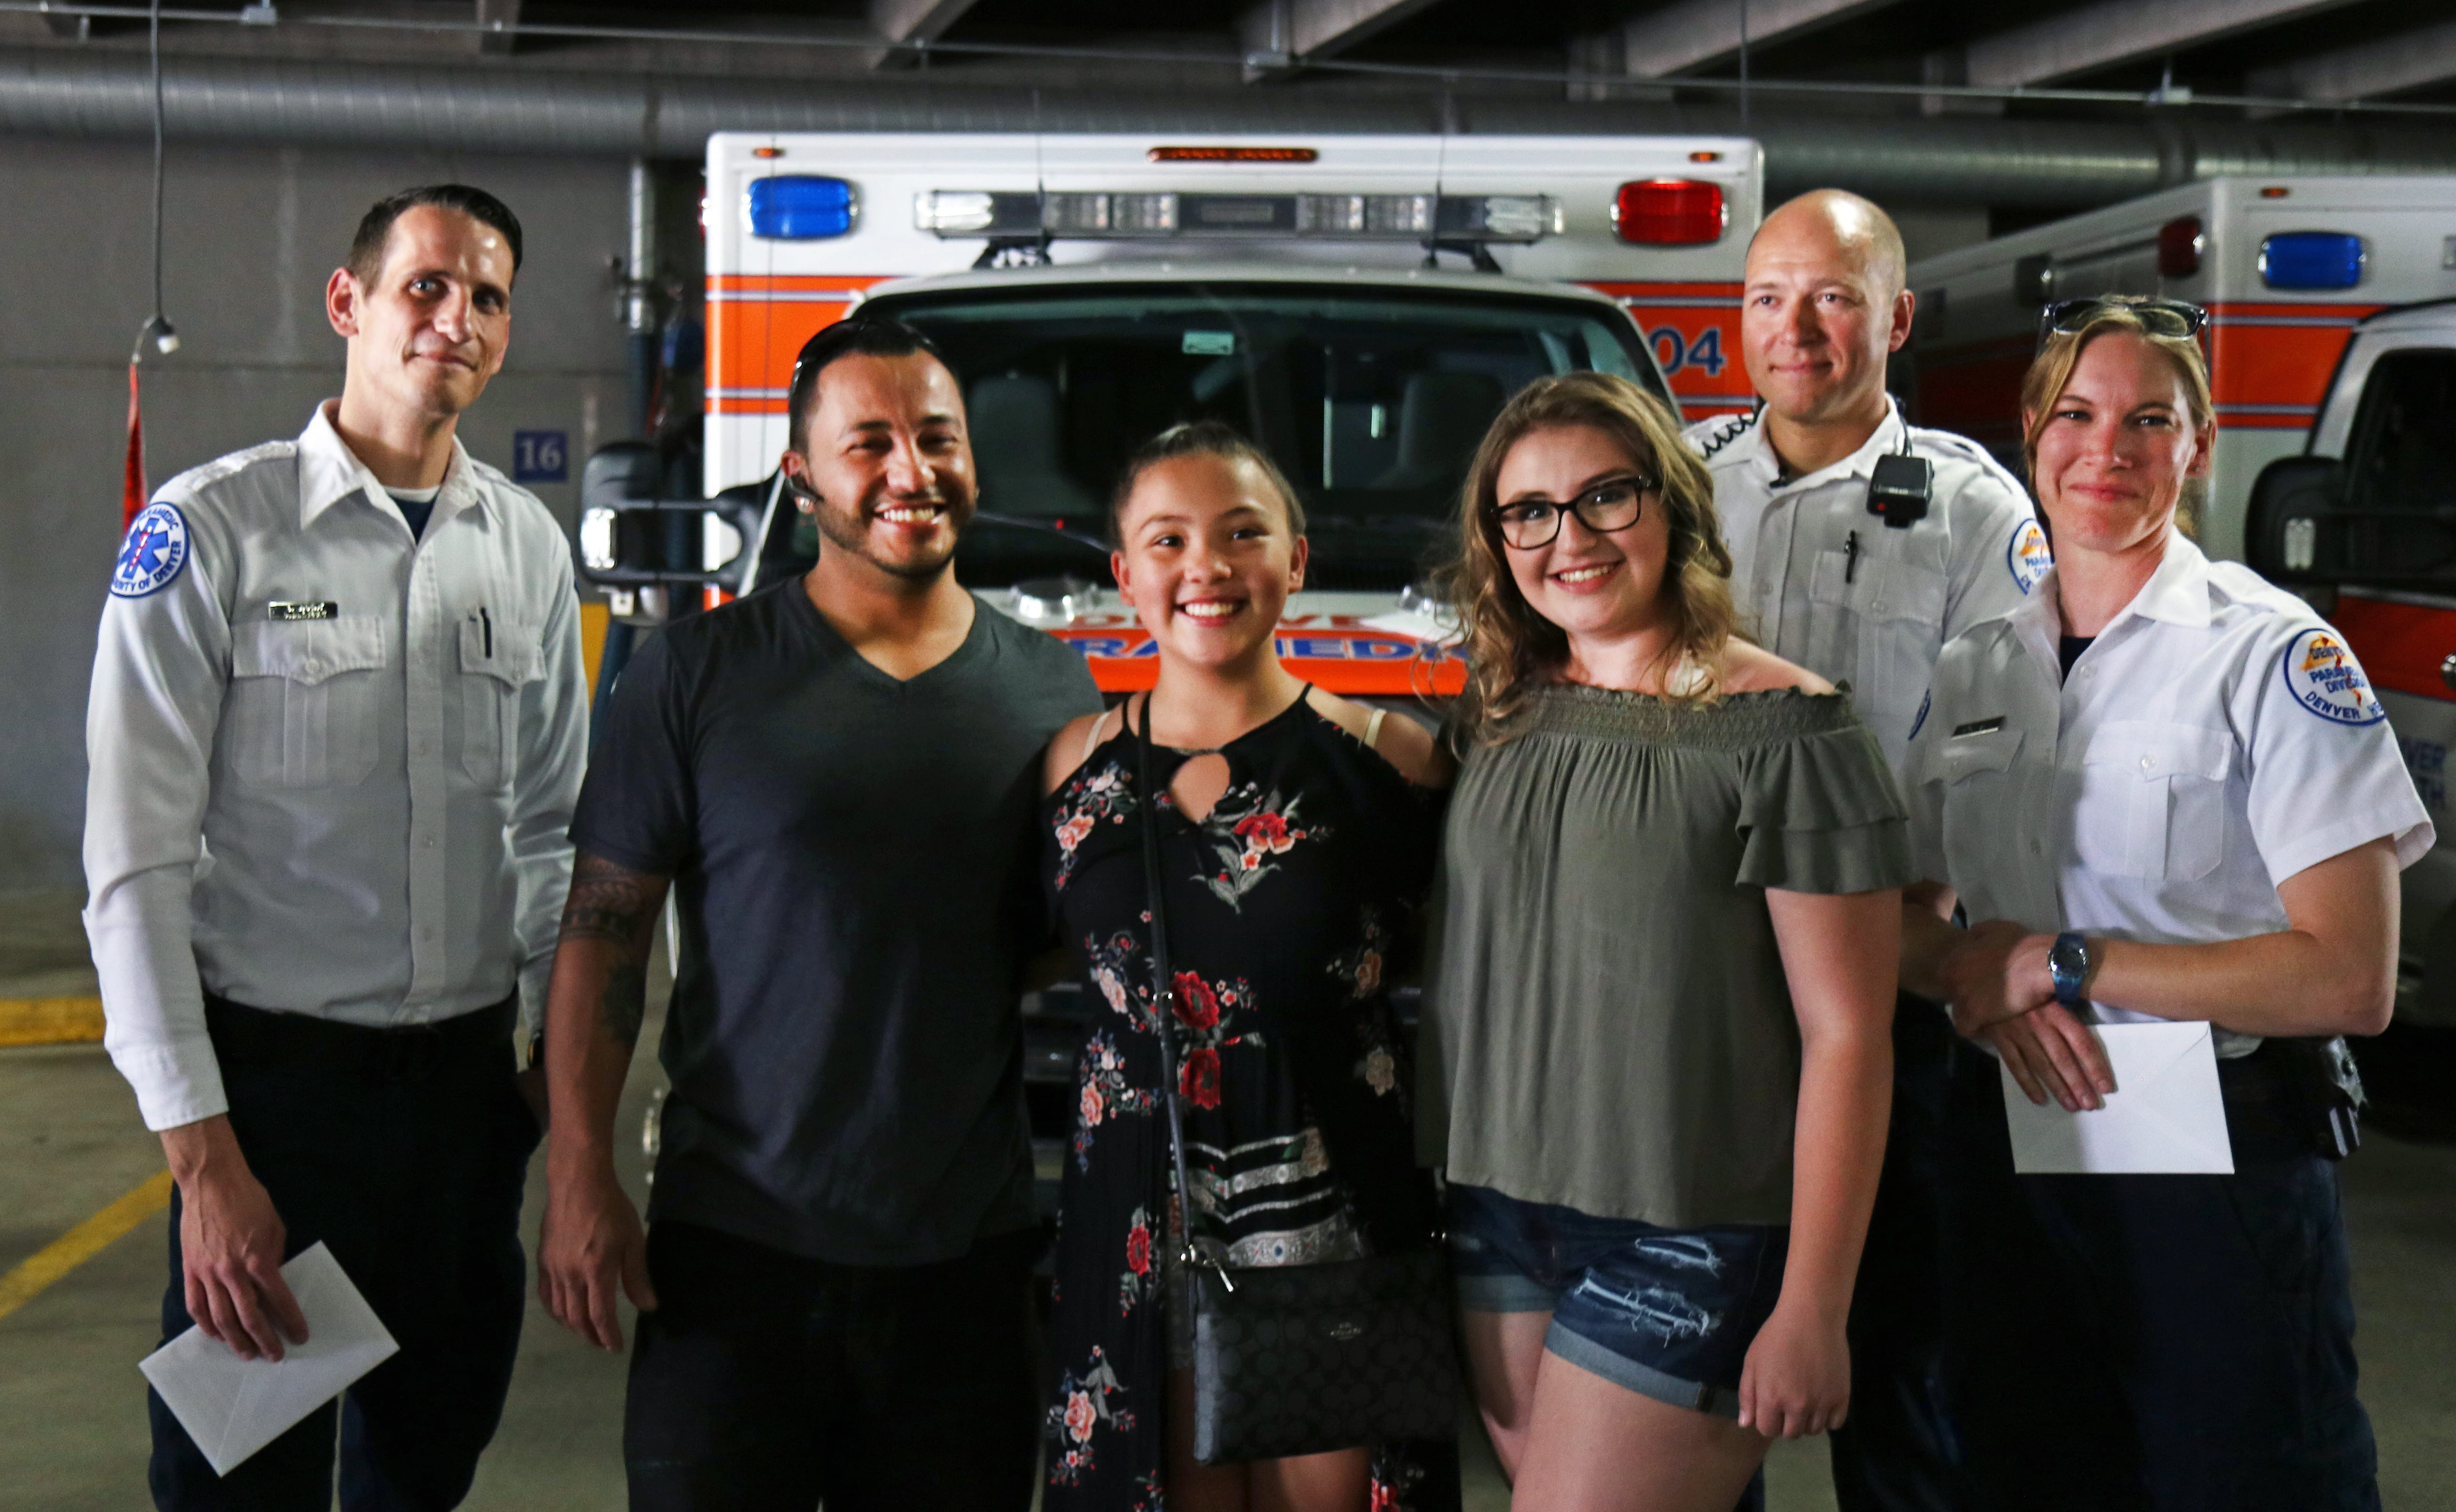 Patient Reunion for Denver Health Paramedics